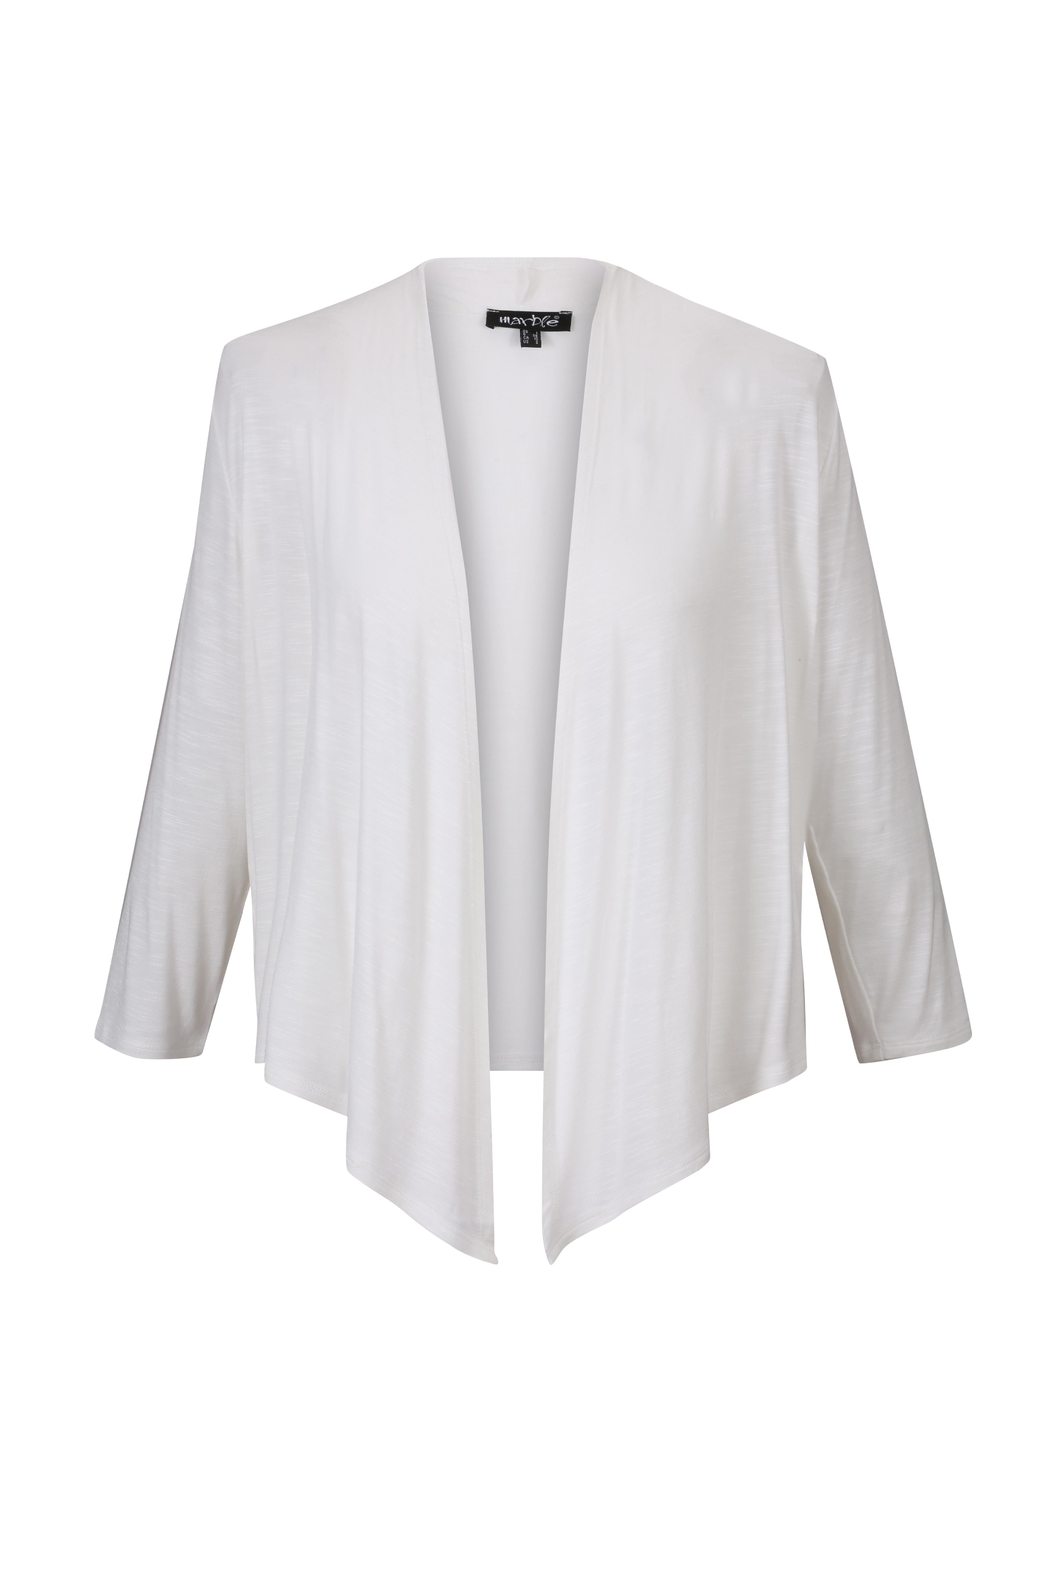 Marble White Knit Cardi - Front Full Image